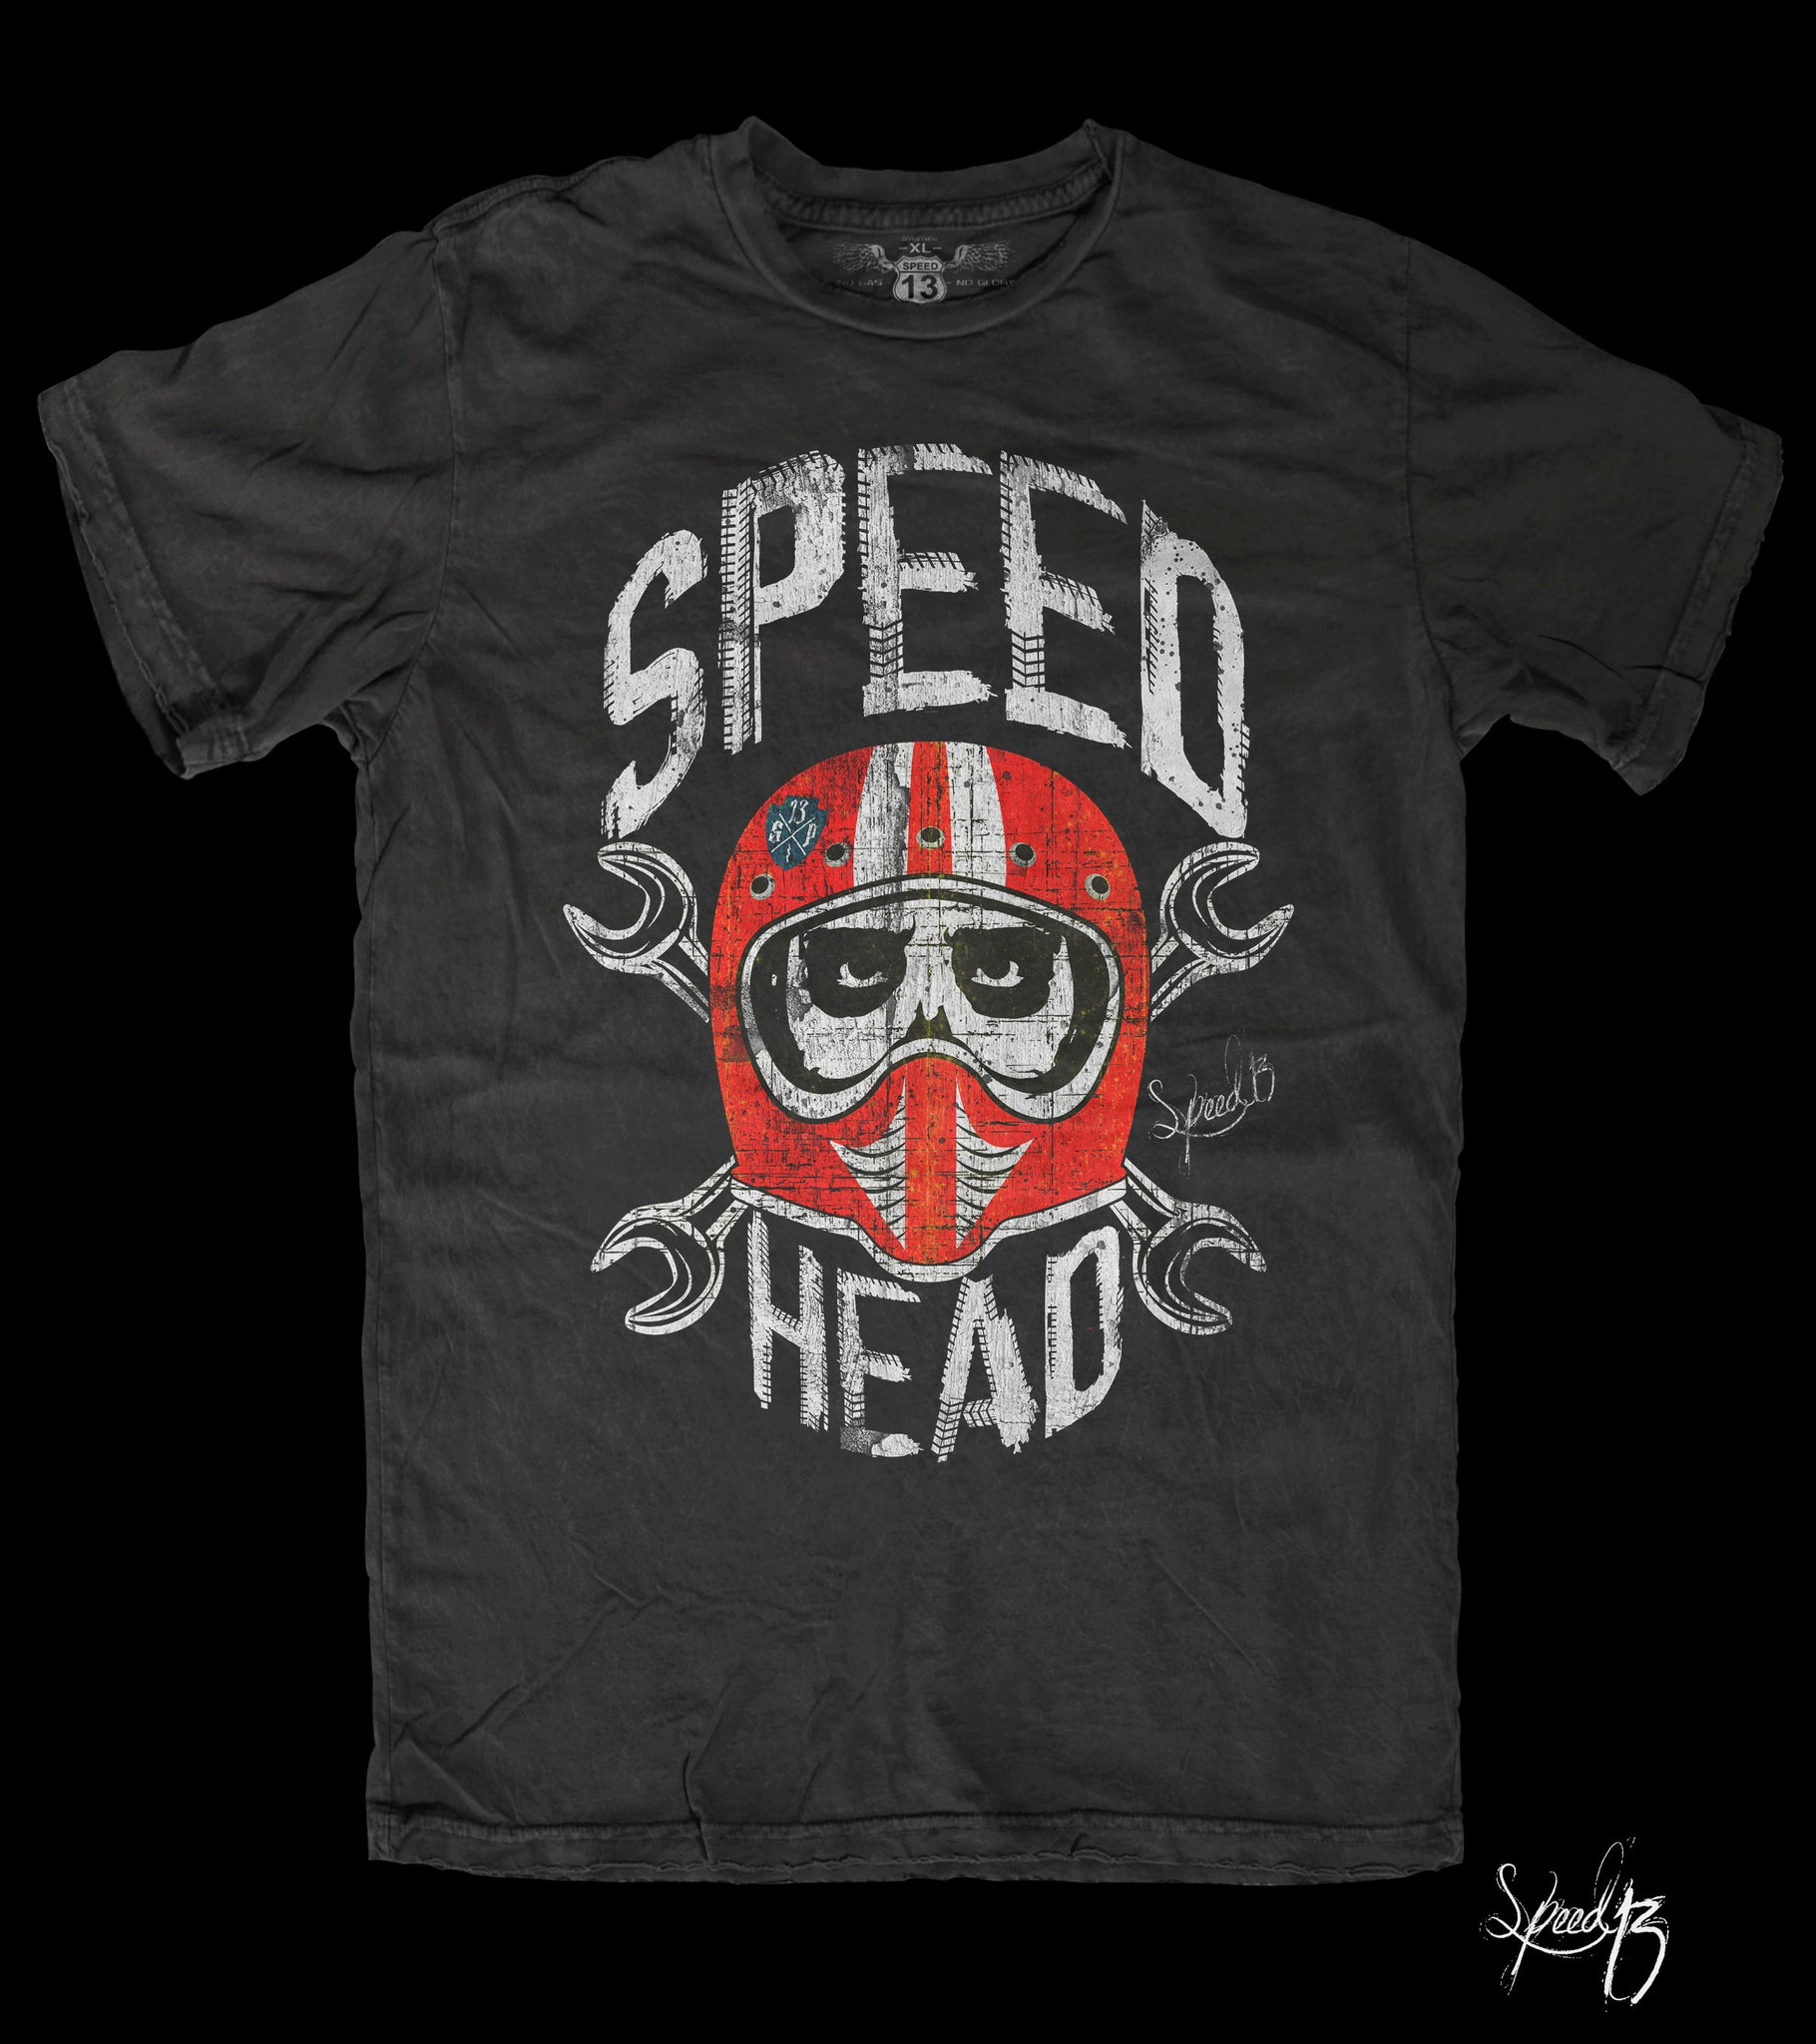 Speed Head